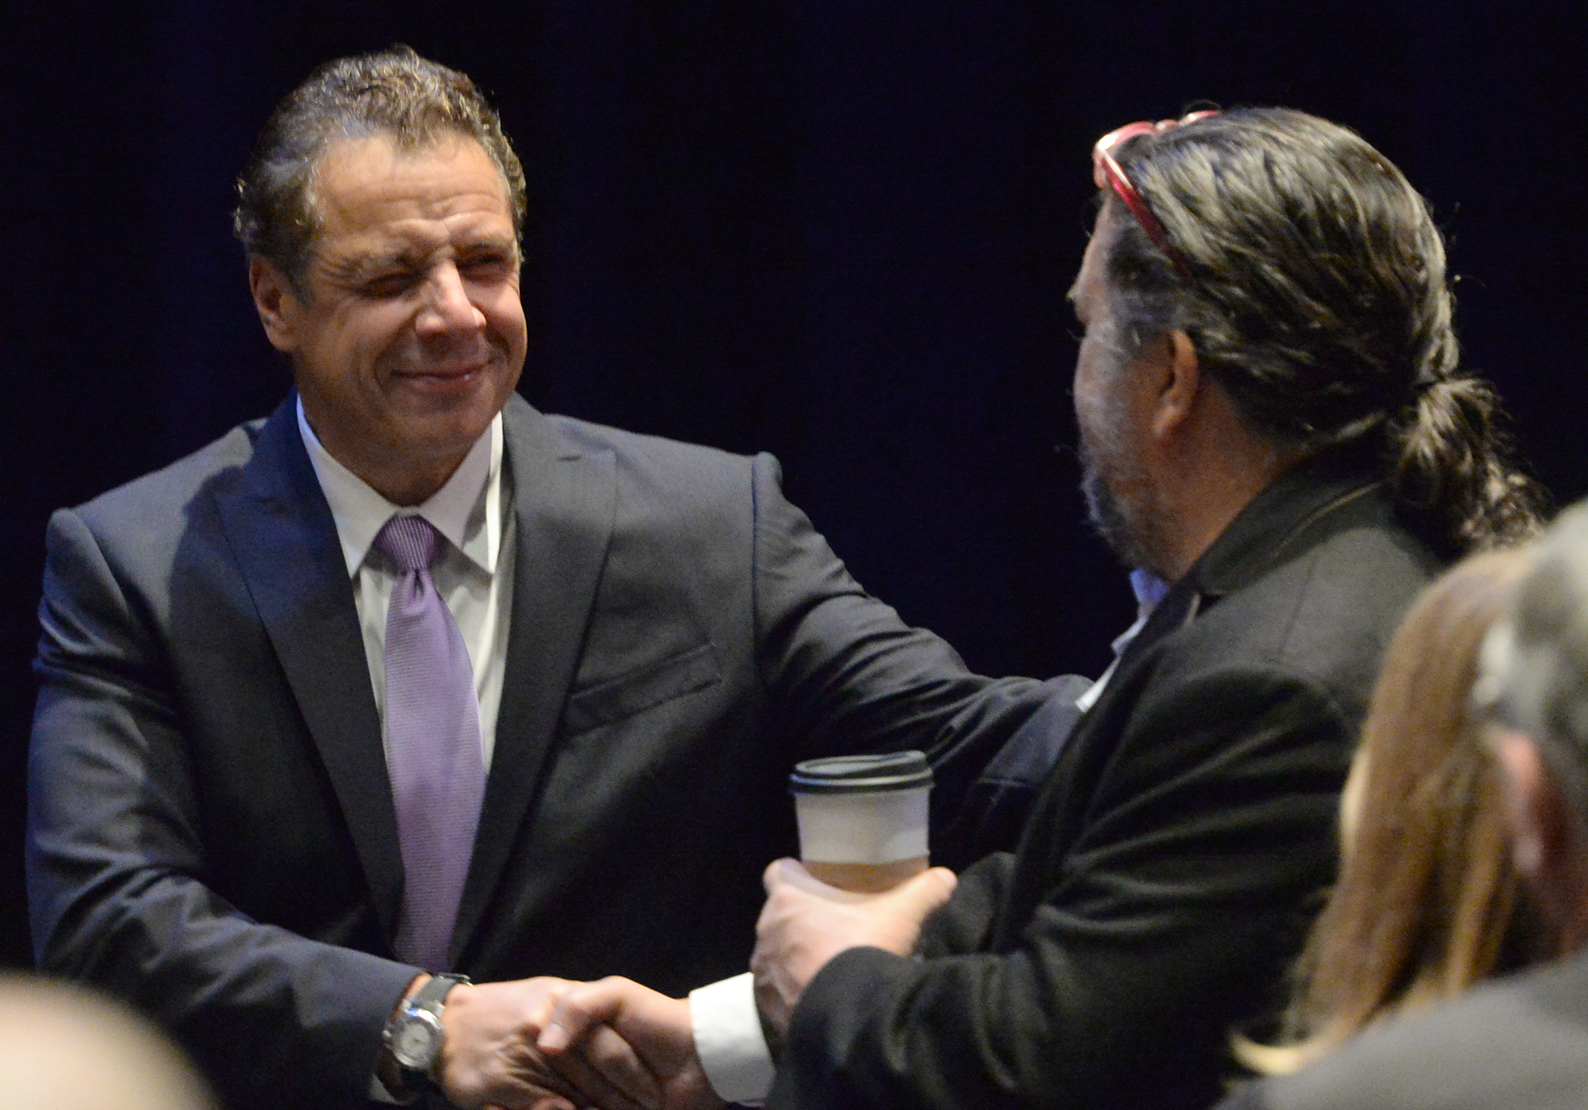 Live Cuomo Speaks At Proctors In Schenectady The Daily Gazette